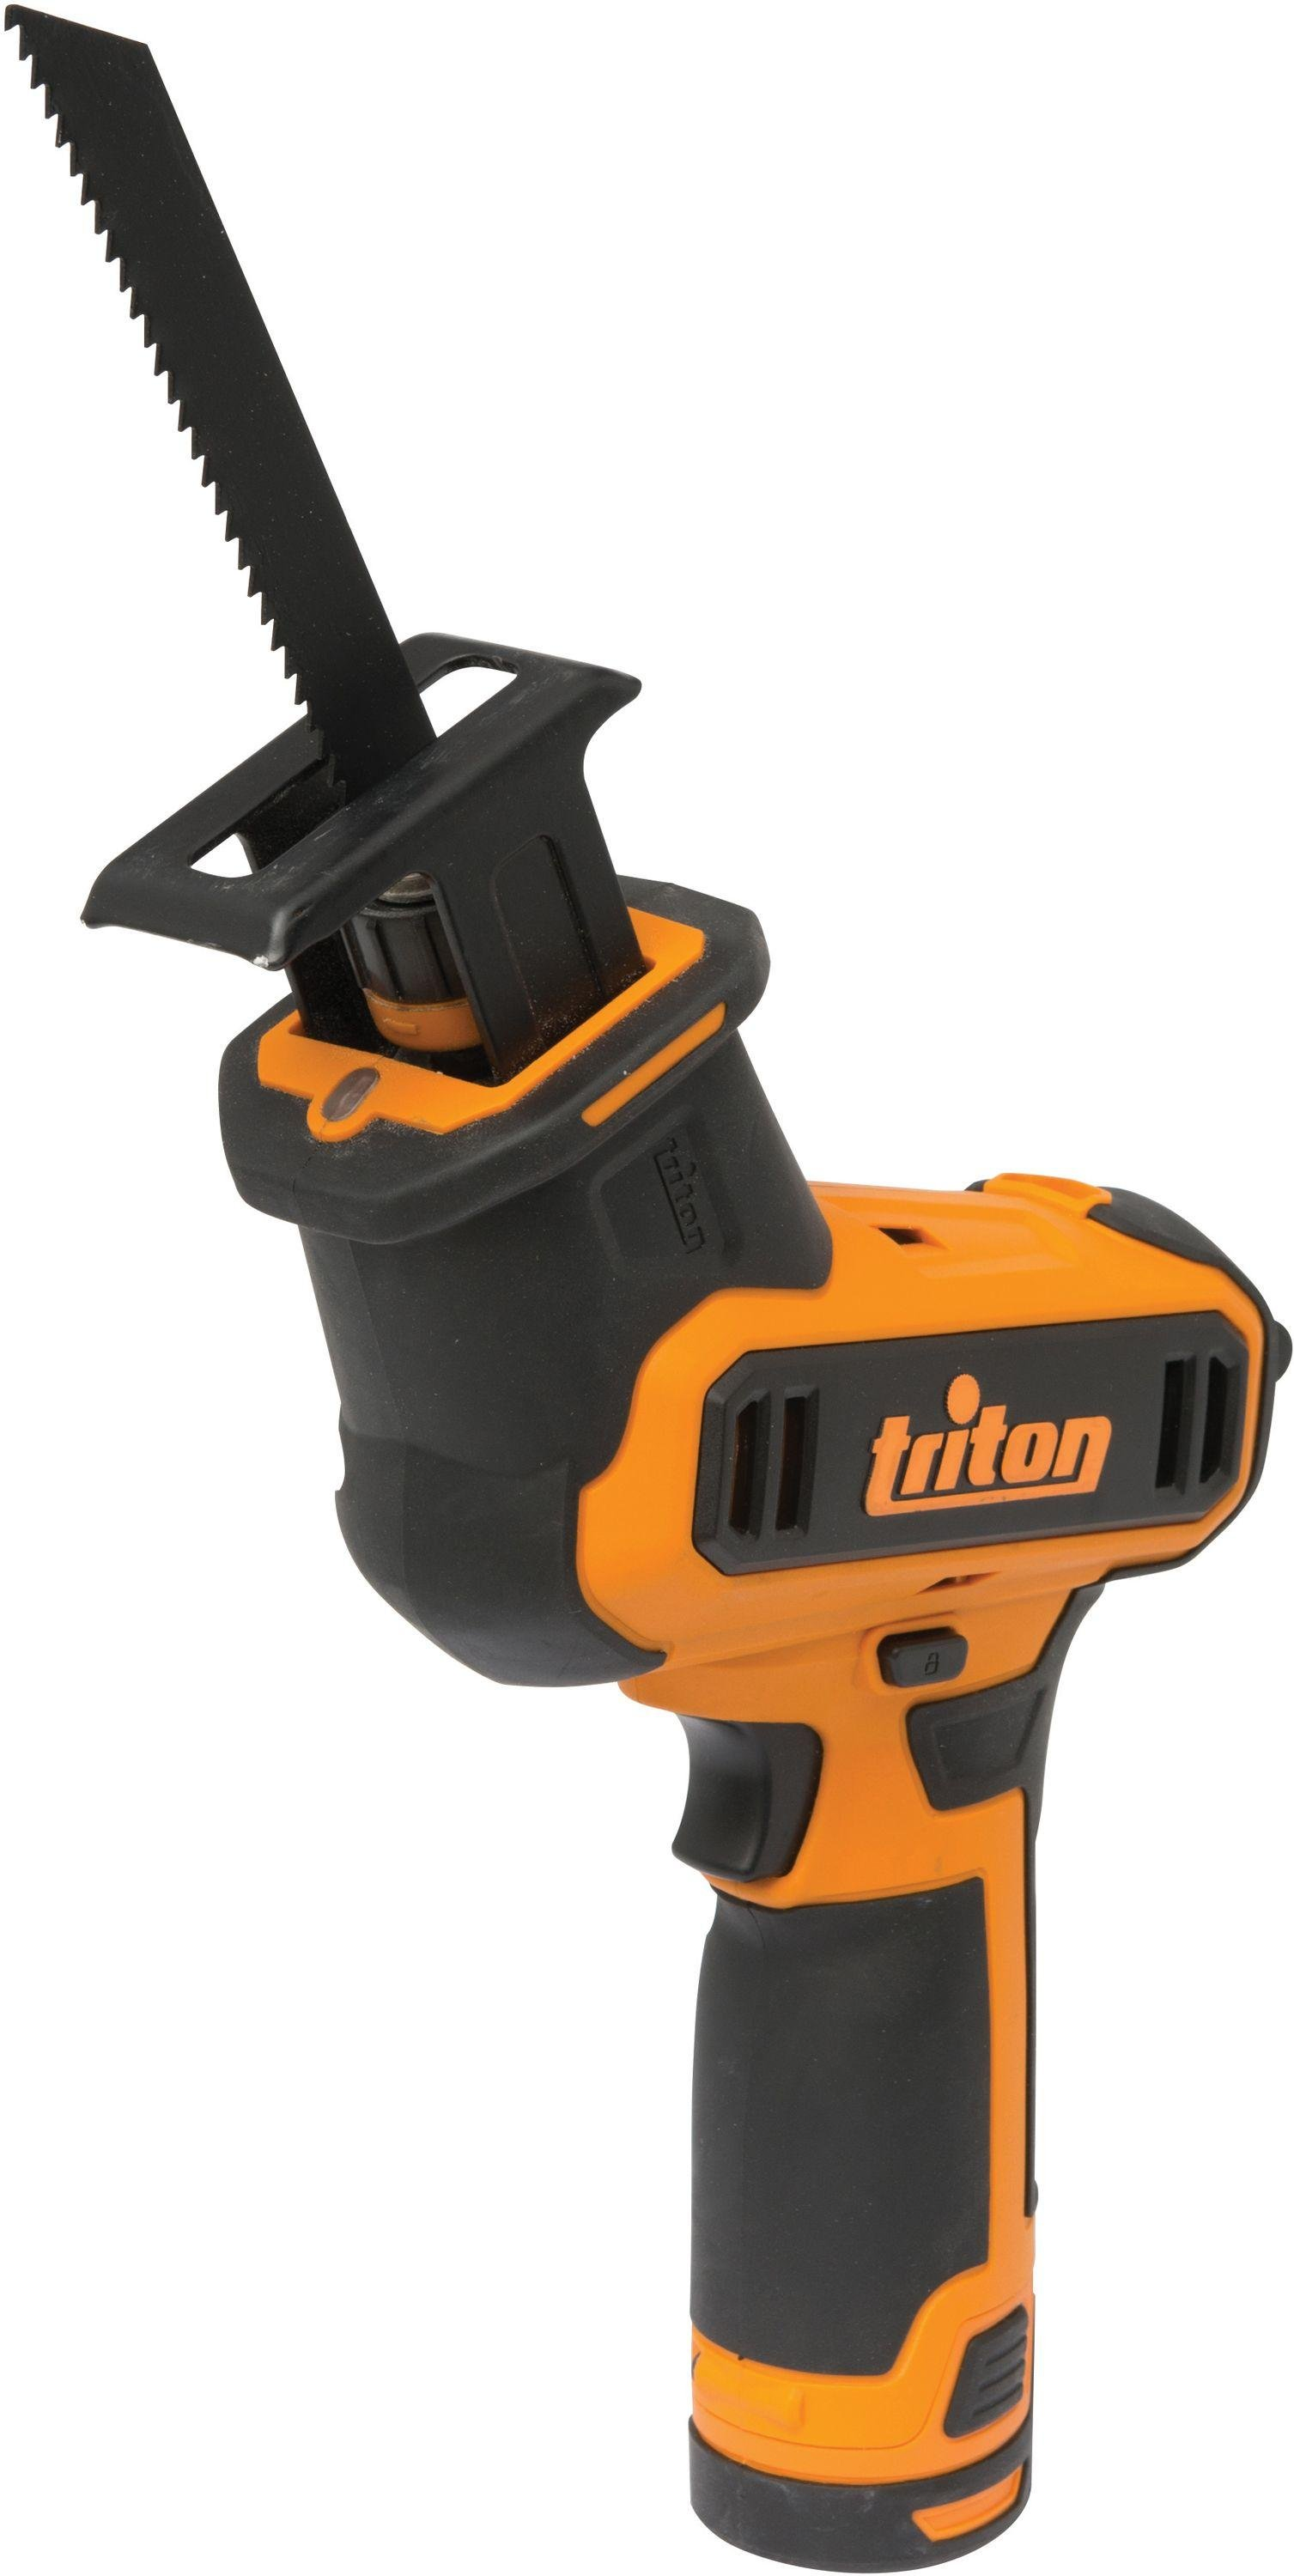 Triton - T12 12v Reciprocating Saw lowest price